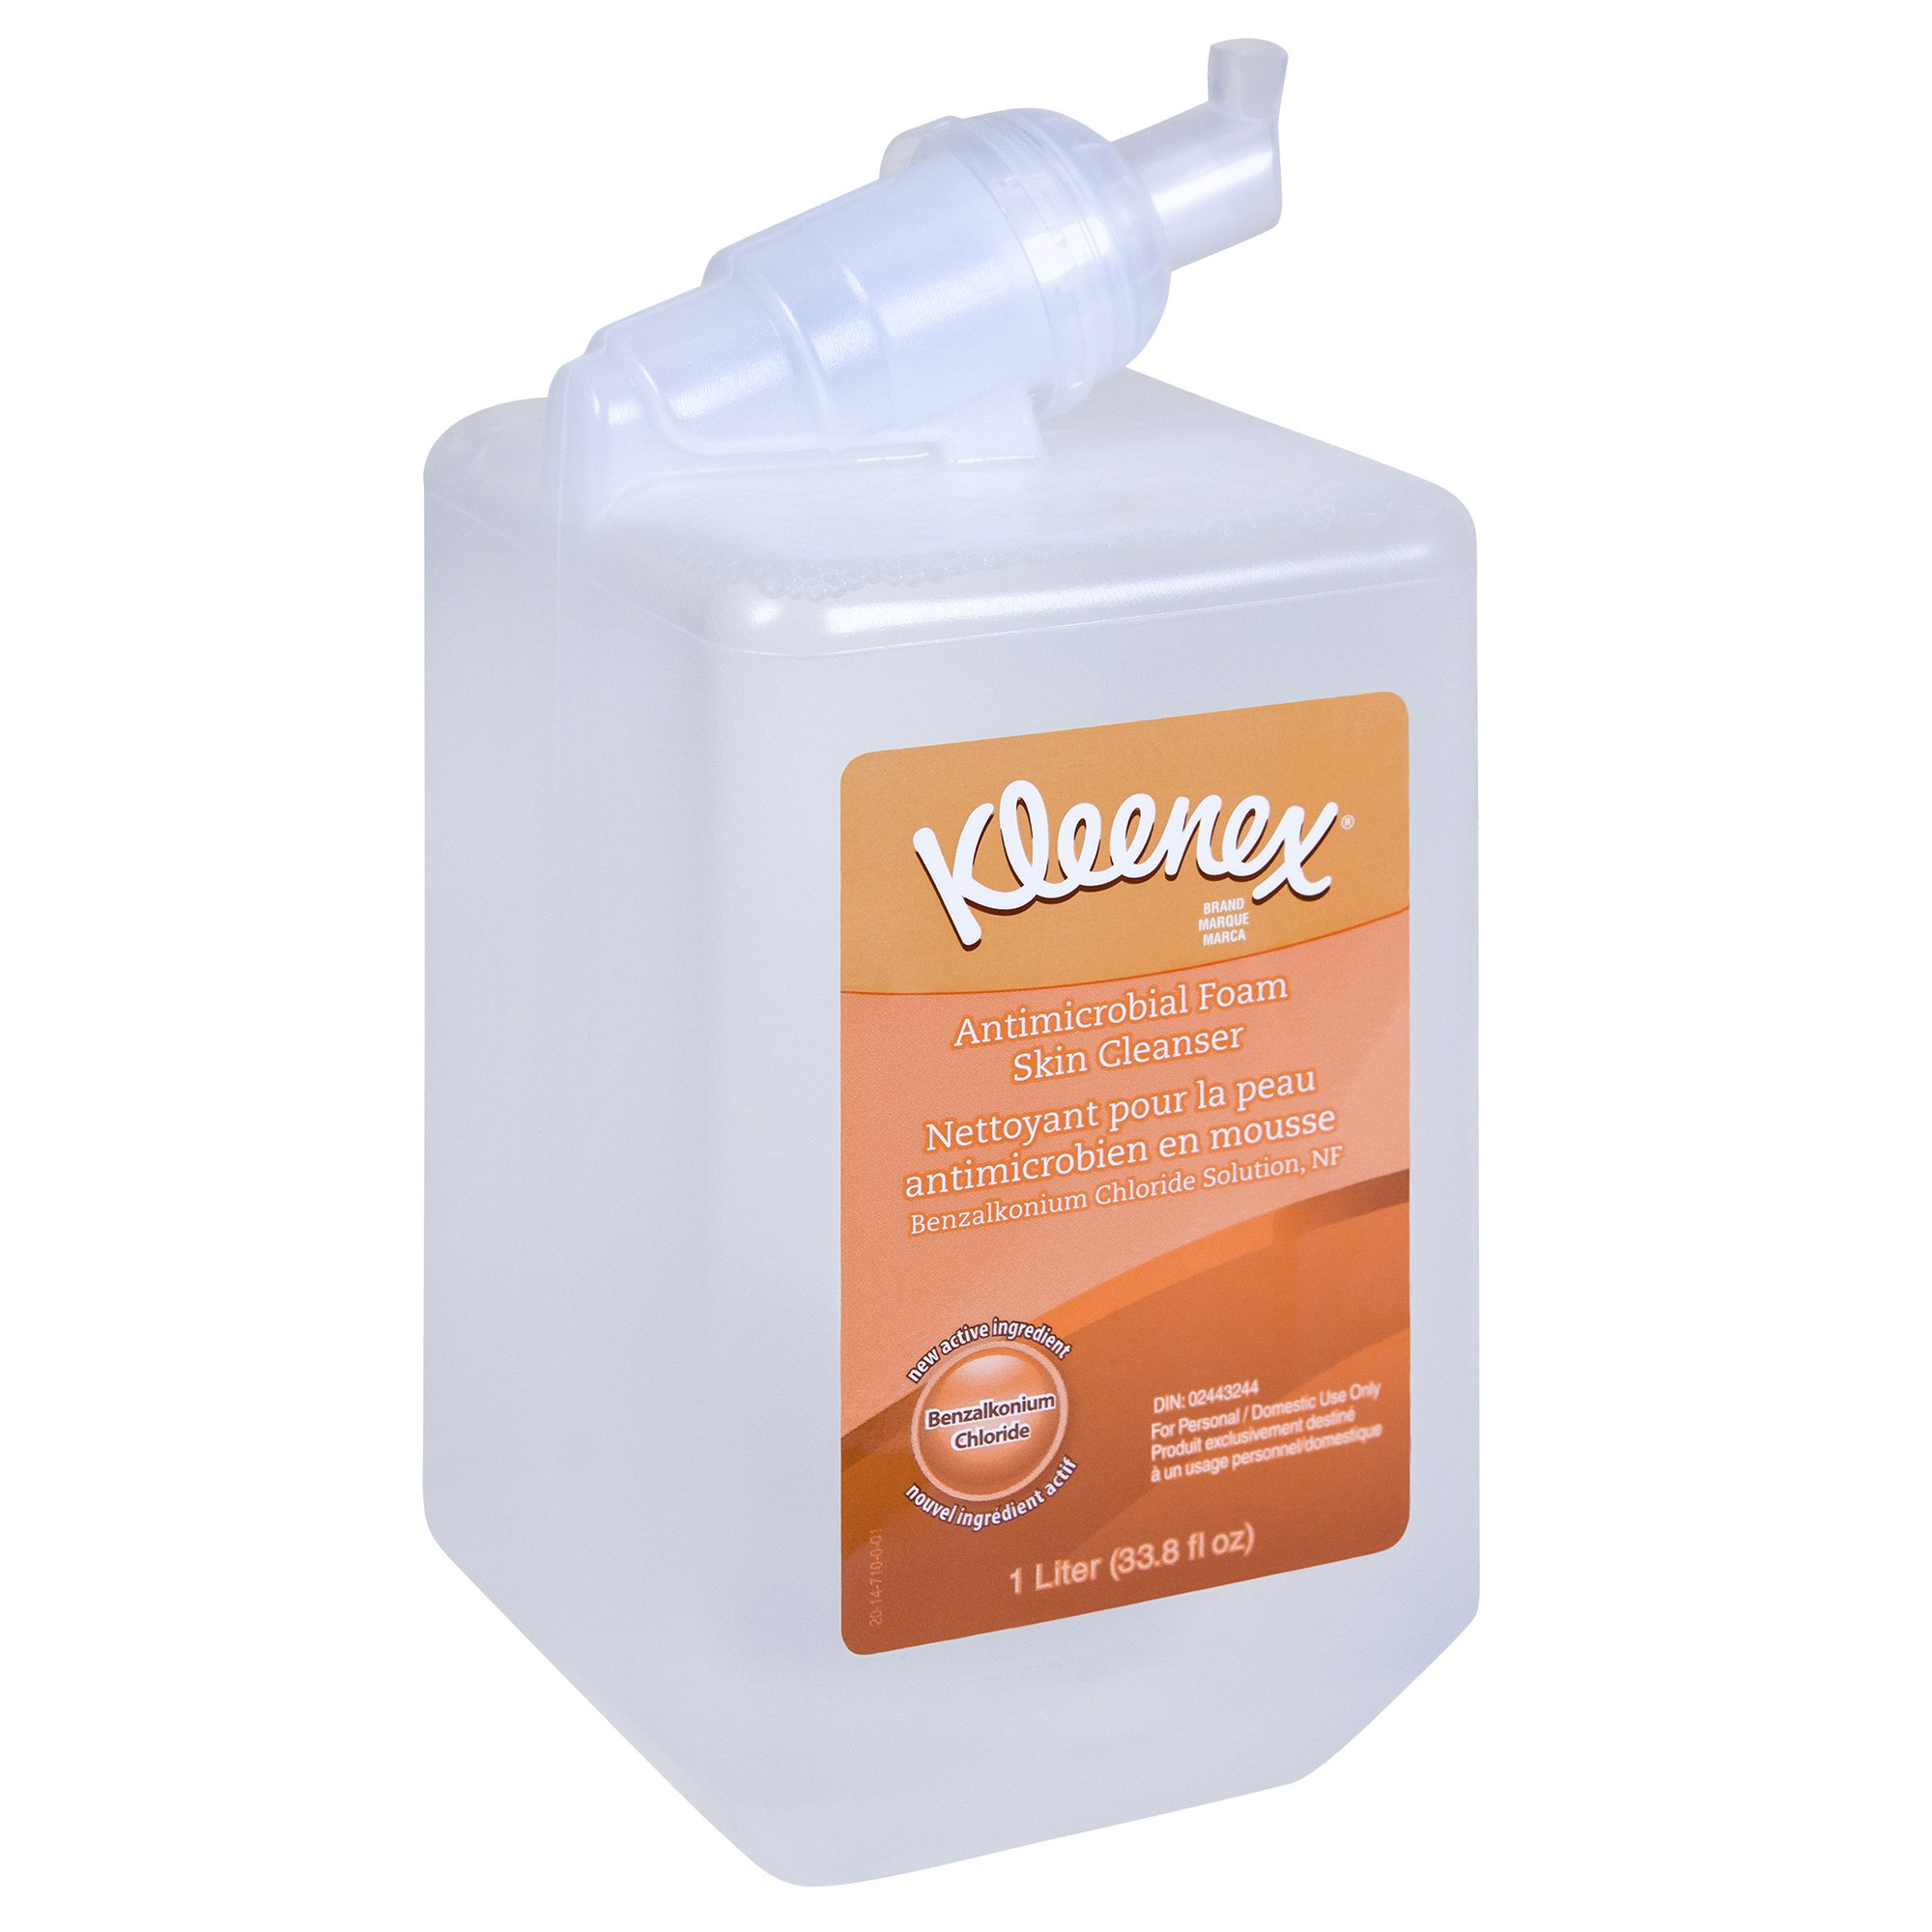 Kleenex Antibacterial Foam Skin Cleanser, NSF E-4 Rated (91554), 0.1% Benzalkonium Chloride, Unscented Soap, Clear, 1.0 L, 6 Packages / Case